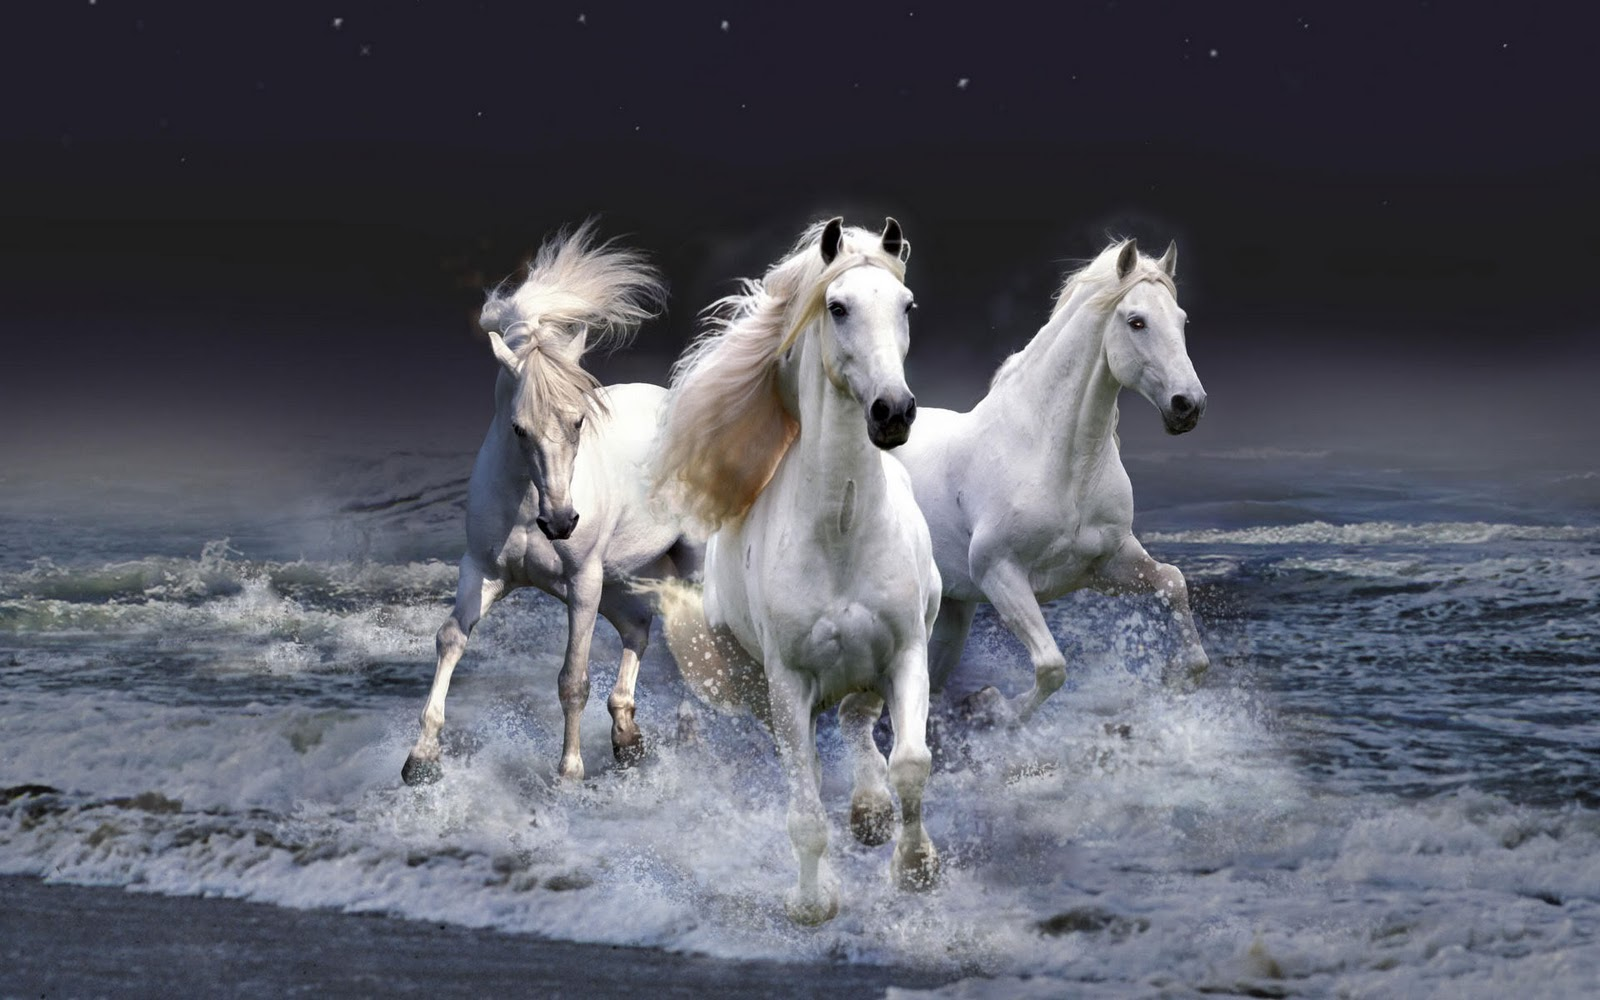 Must see Wallpaper Horse Desert - the-best-top-desktop-horse-wallpapers-15  Pic_879372.jpg